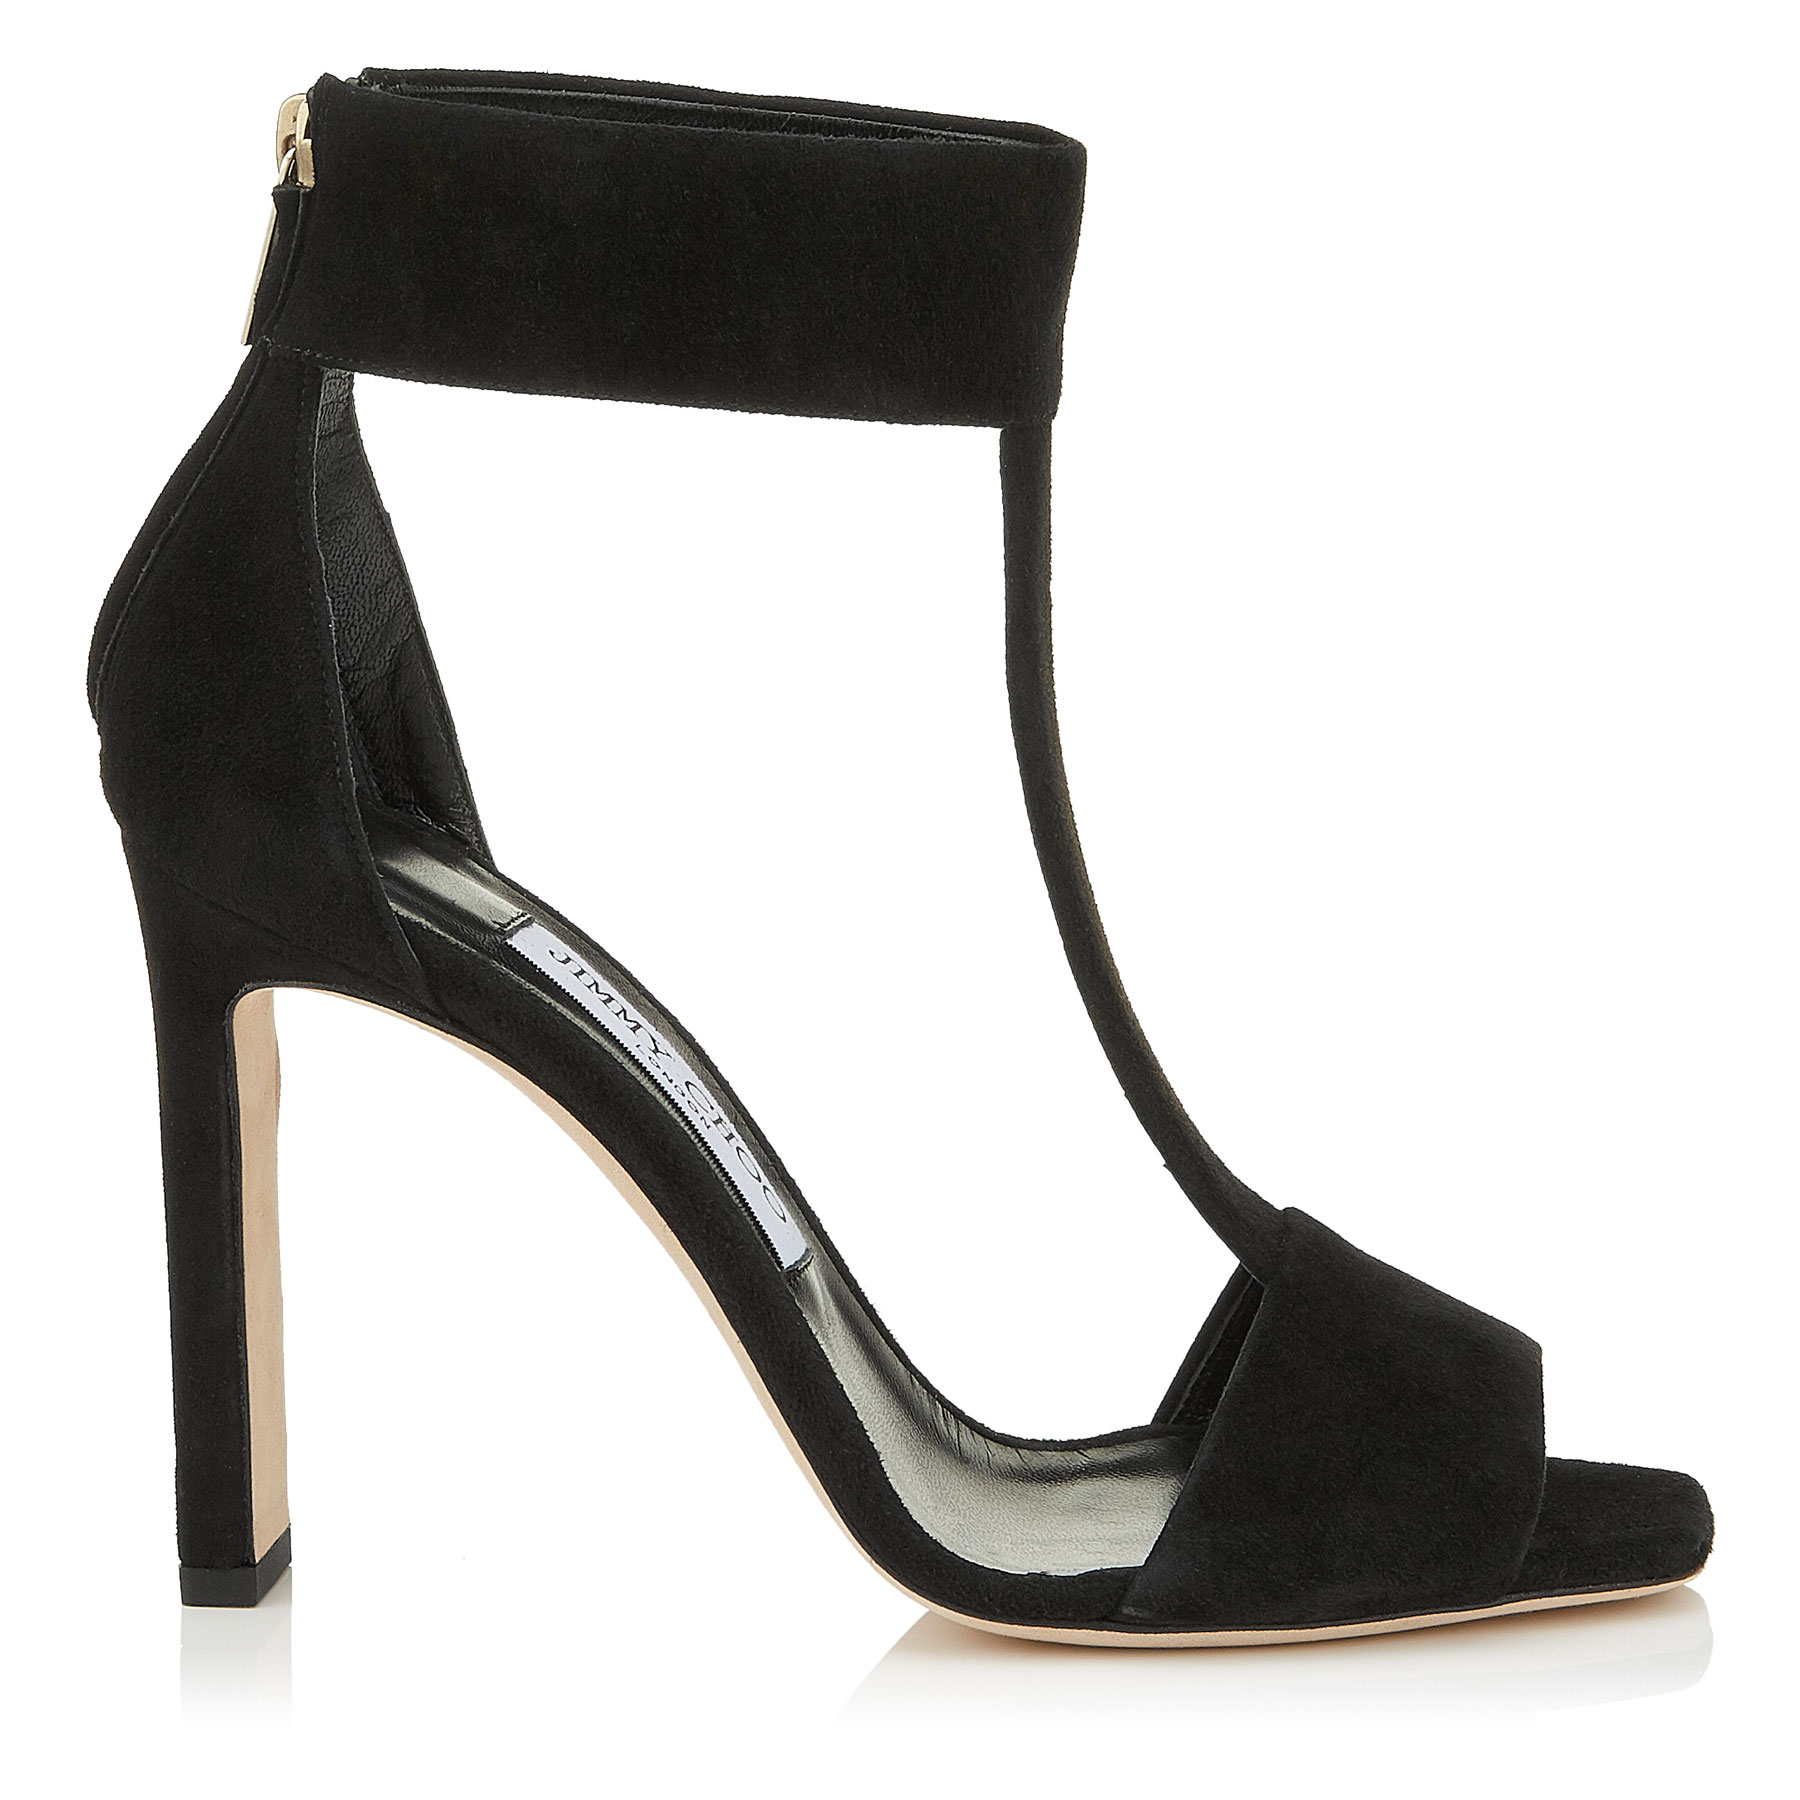 BETHEL 100 Black Suede Sandals by Jimmy Choo